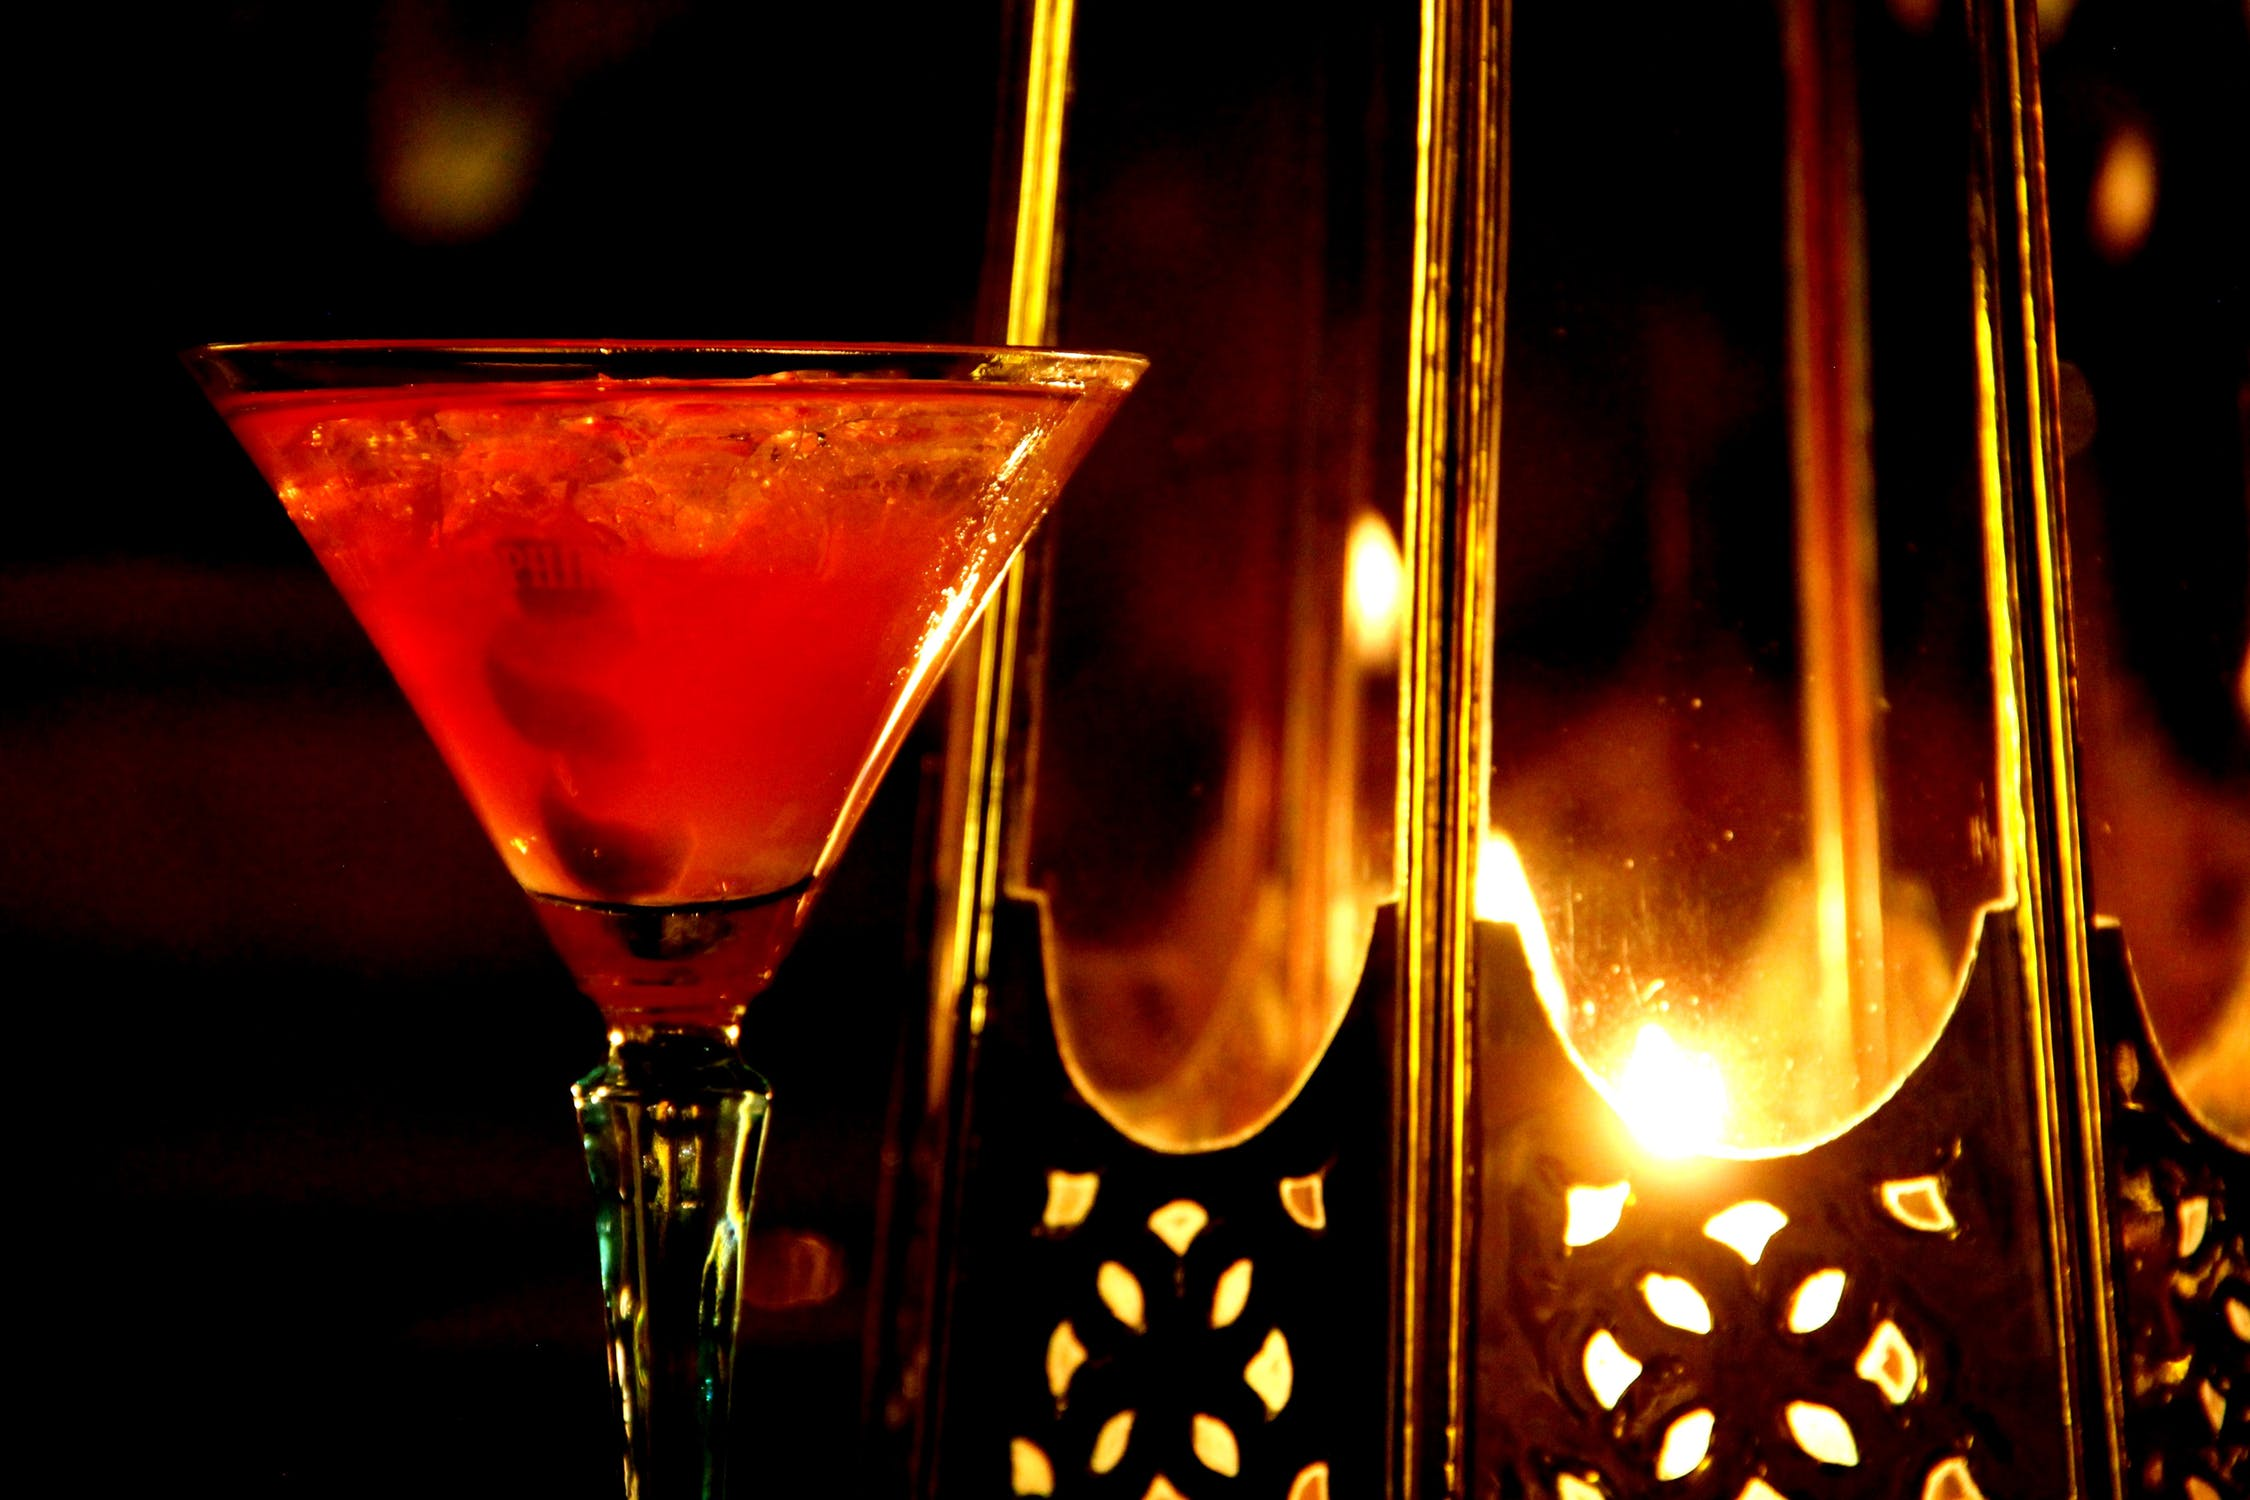 cosmopolitan-in-cocktail-glass